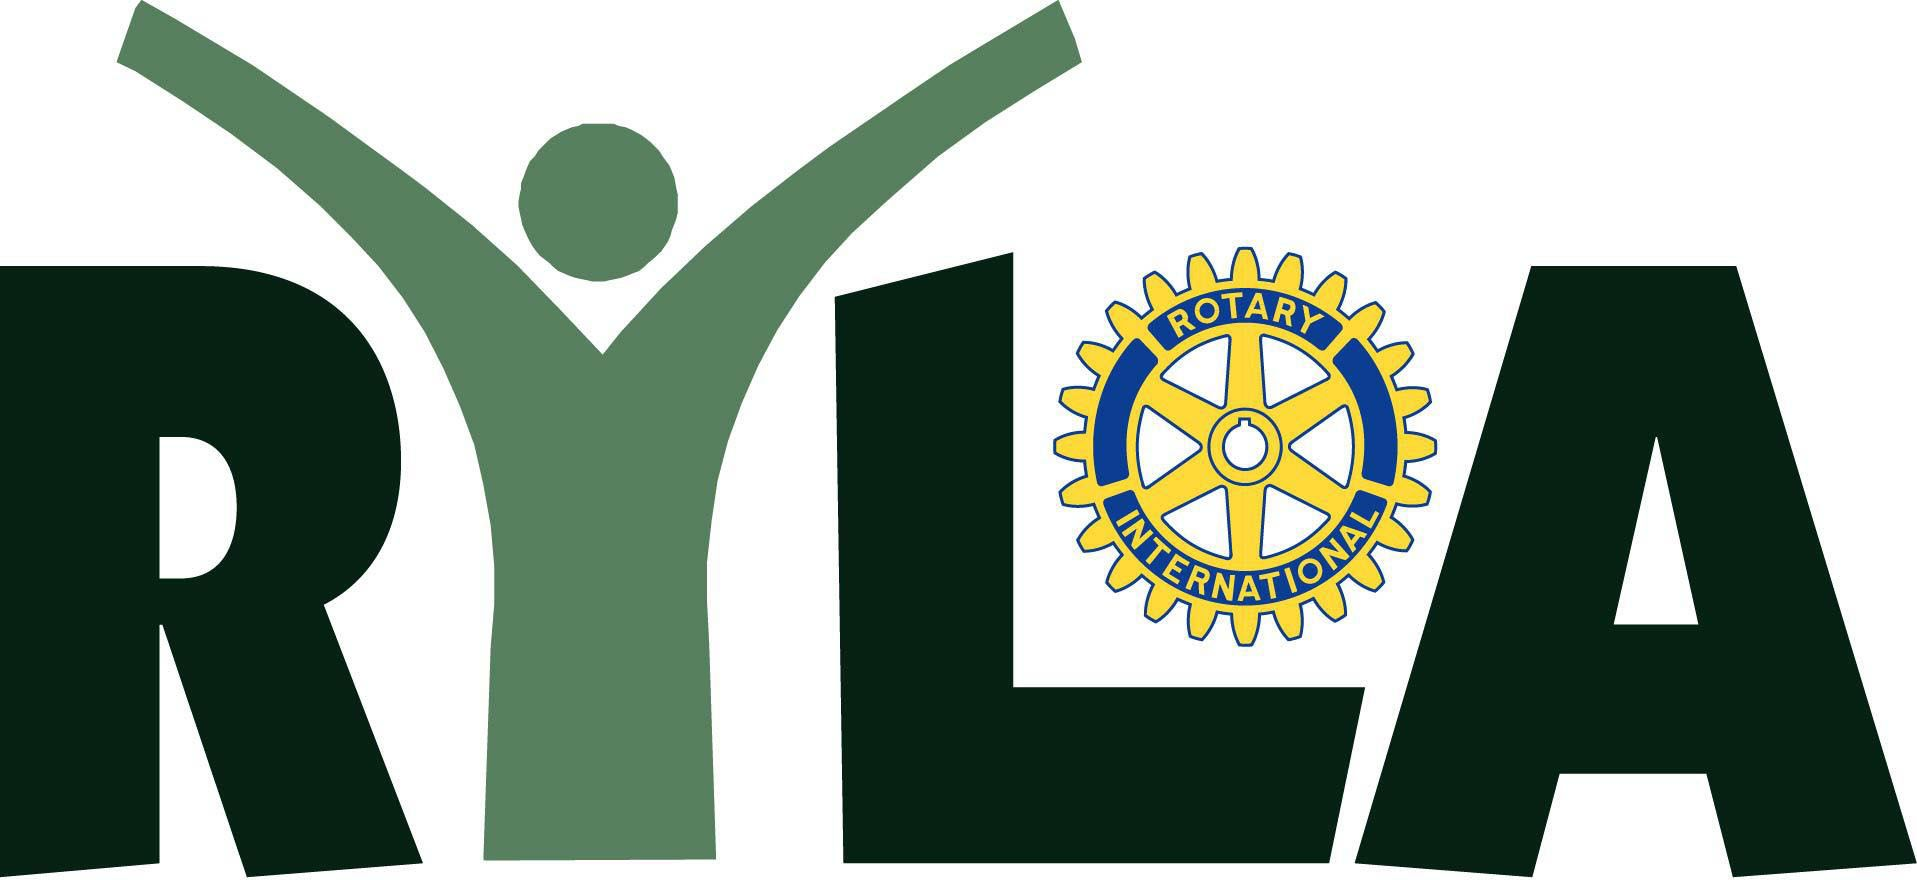 The official logo for the Rotary Youth Leadership Awards.